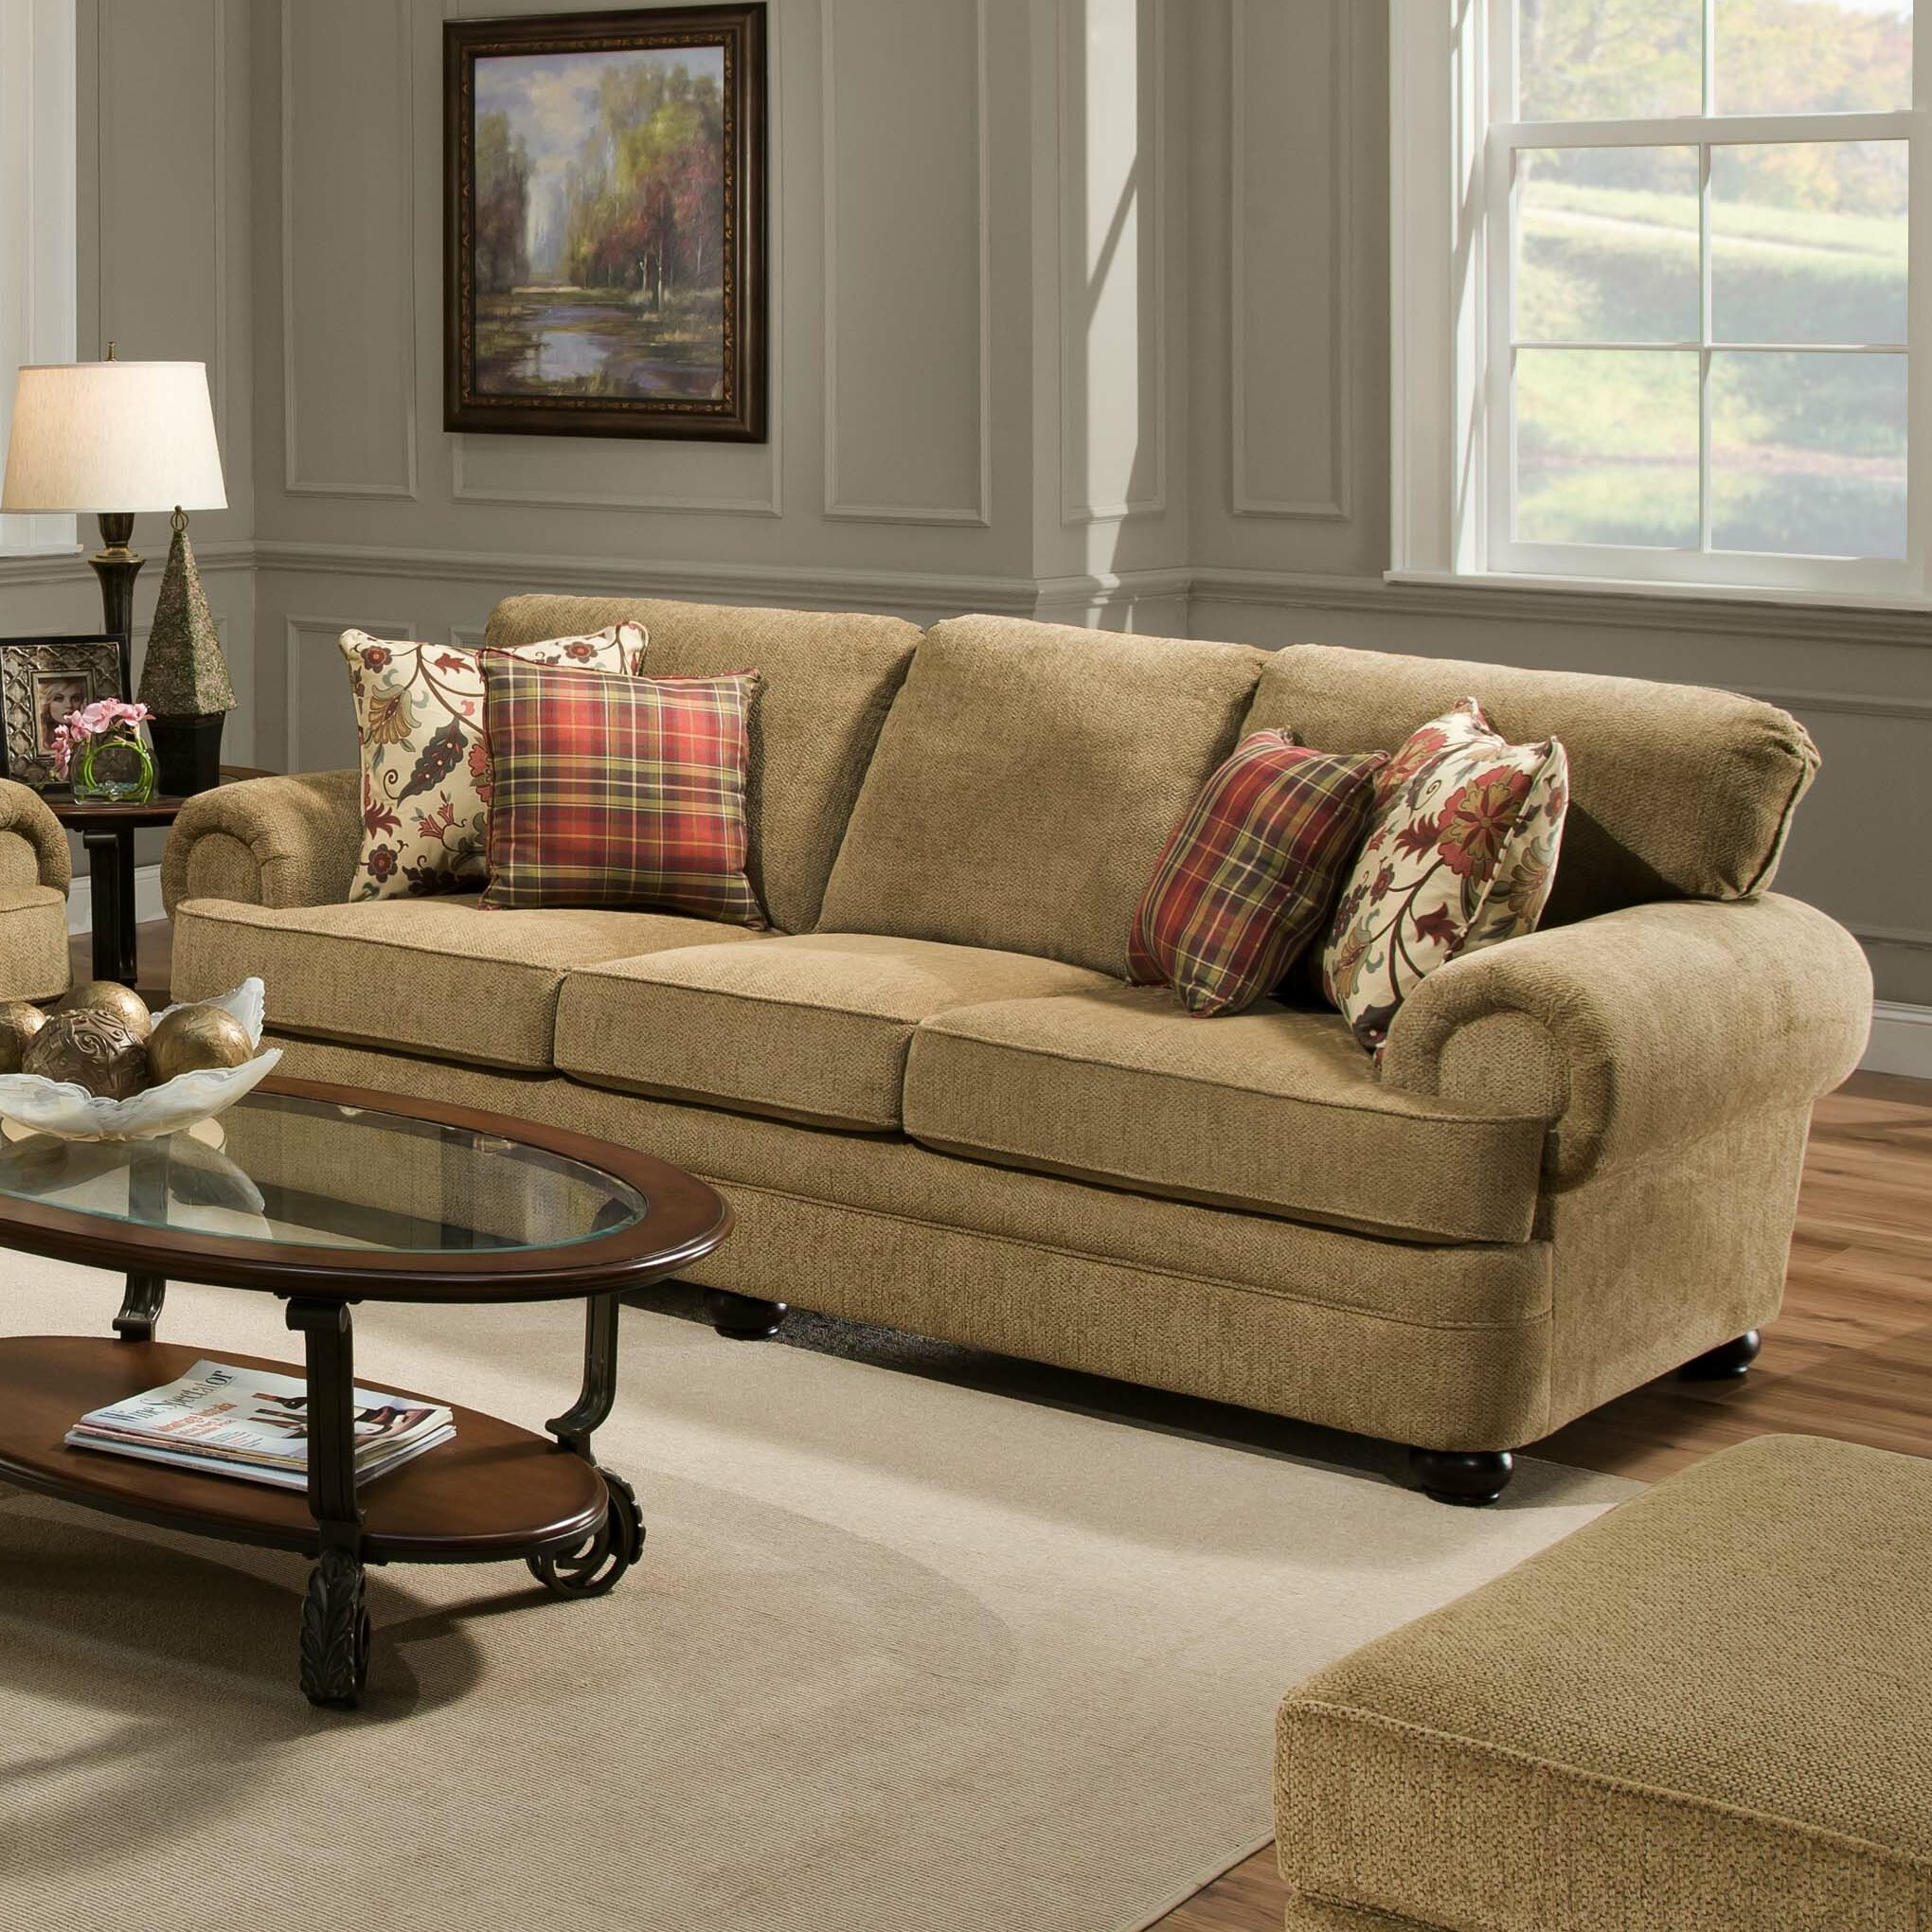 Simmons Upholstery Thunder Living Room Collection Reviews Wayfair